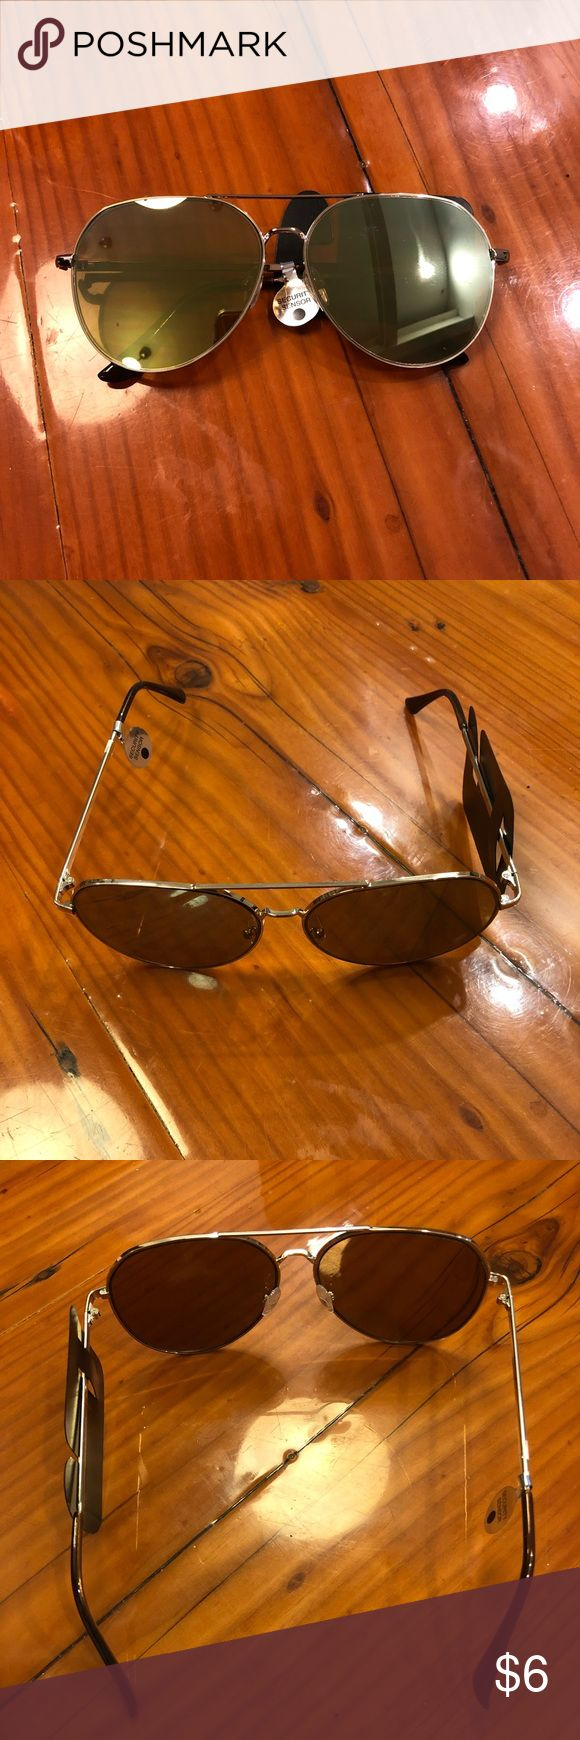 Mirrored Aviator Sunglasses 🕶 Charlotte Russe Mirrored Aviator Sunglasses :: New with Tags! Great condition! No scratches or wear. Greenish Gold mirror color. Would compare to the largest size Ray Ban aviators. Super cute for by the pool! ☀️ Charlotte Russe Accessories Sunglasses